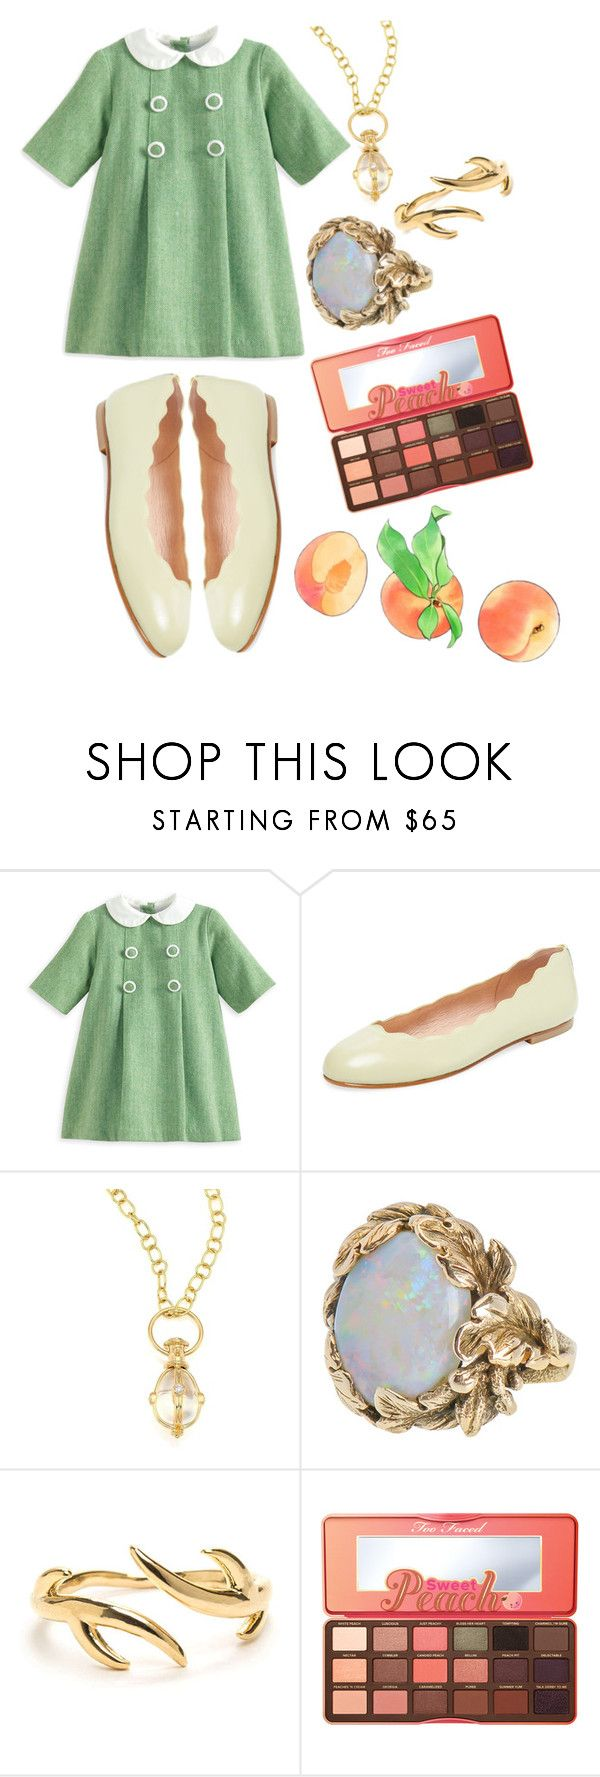 """""""Healer Child"""" by pastelma ❤ liked on Polyvore featuring French Sole FS/NY, Temple St. Clair and Too Faced Cosmetics"""